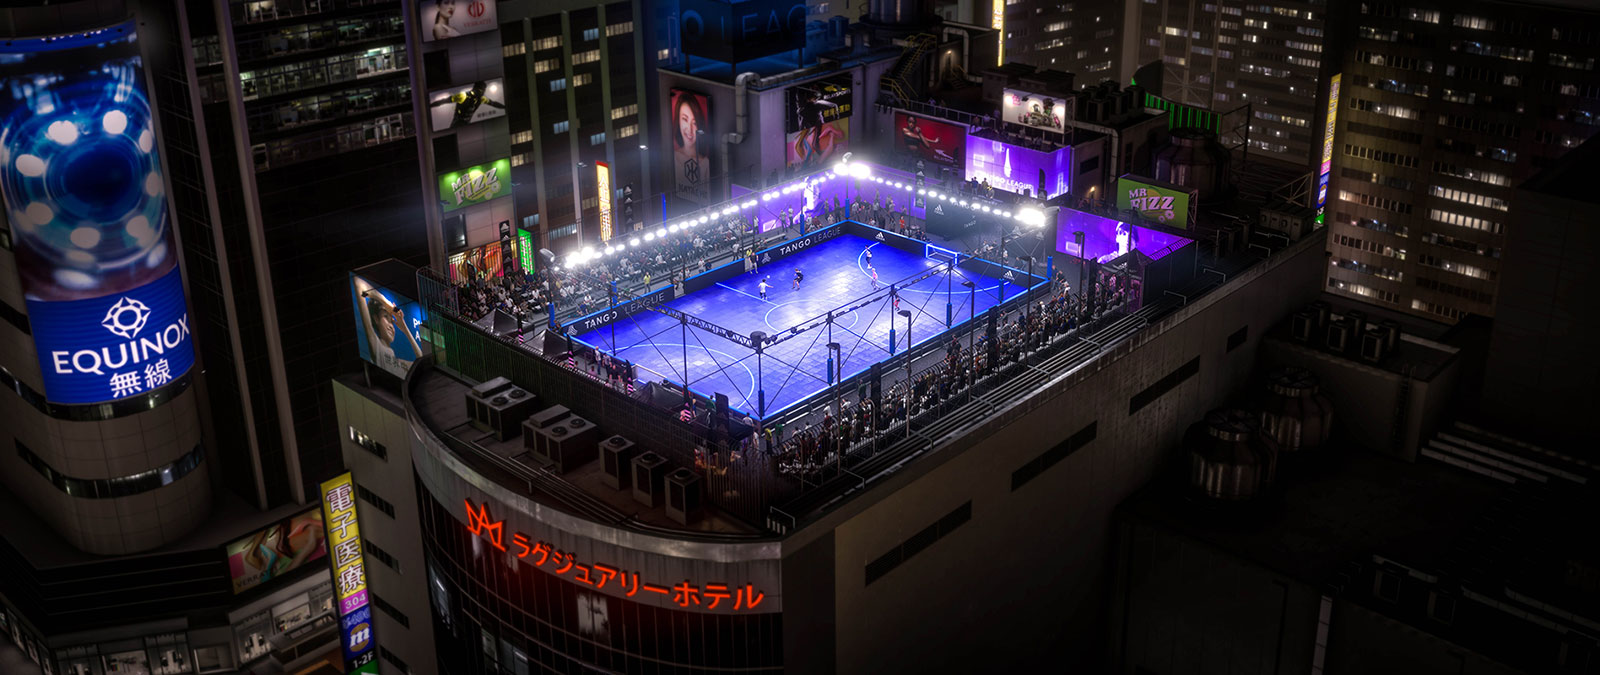 People playing street soccer on a rooftop cage in Tokyo